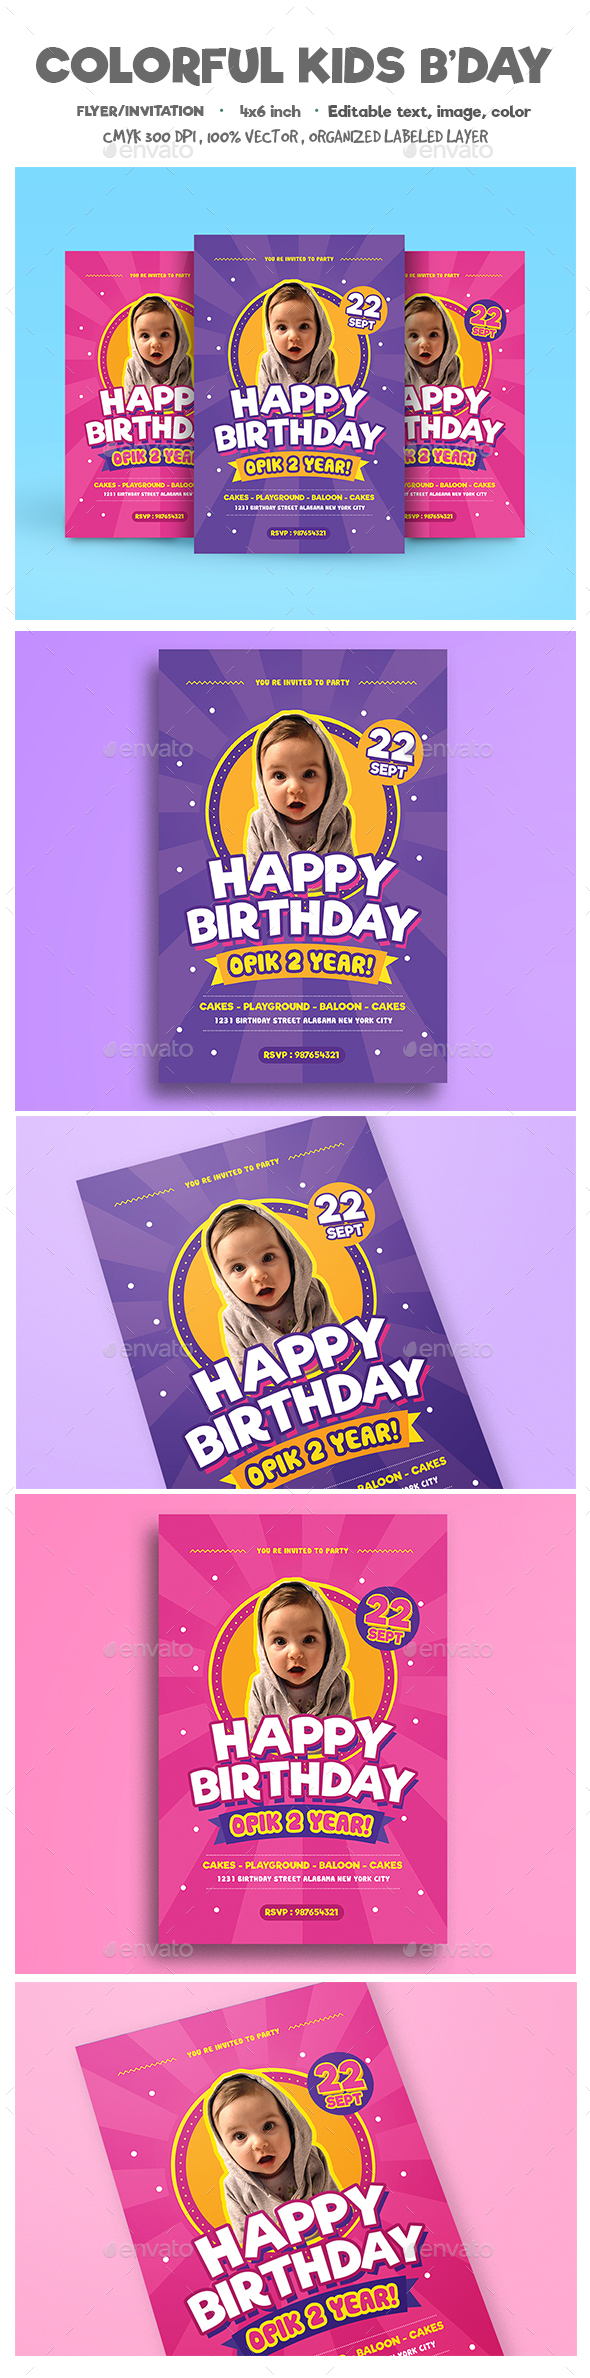 Colorful Kids Birthday Flyer/Invitation - Birthday Greeting Cards